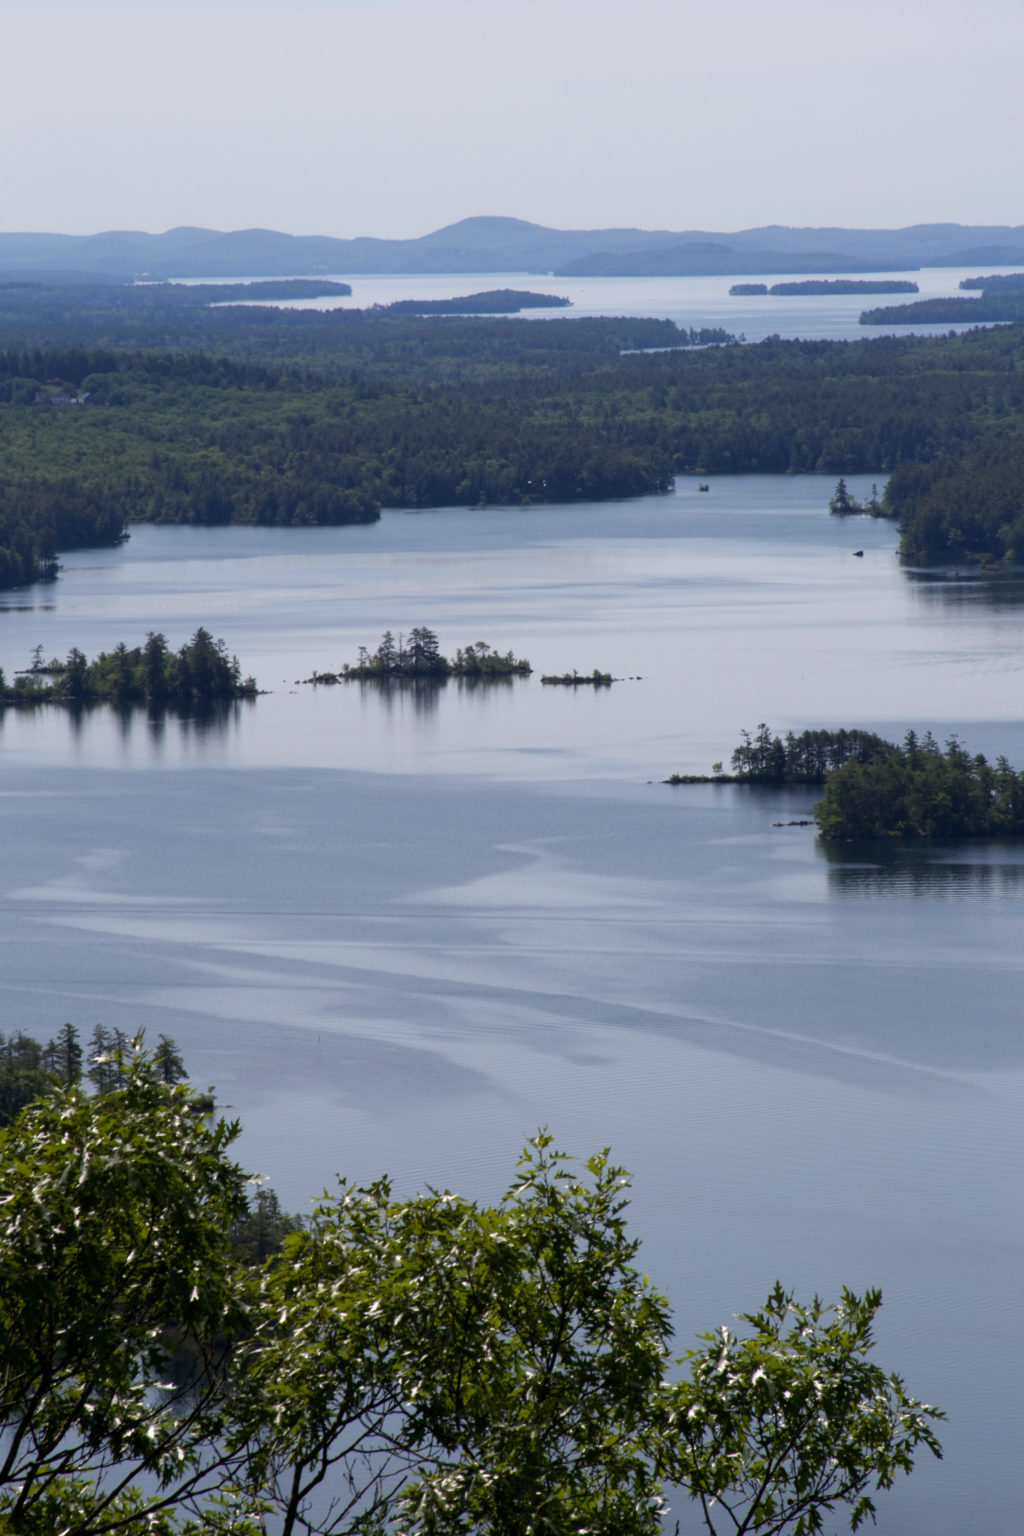 Looking Down at Little Islands on the Lake